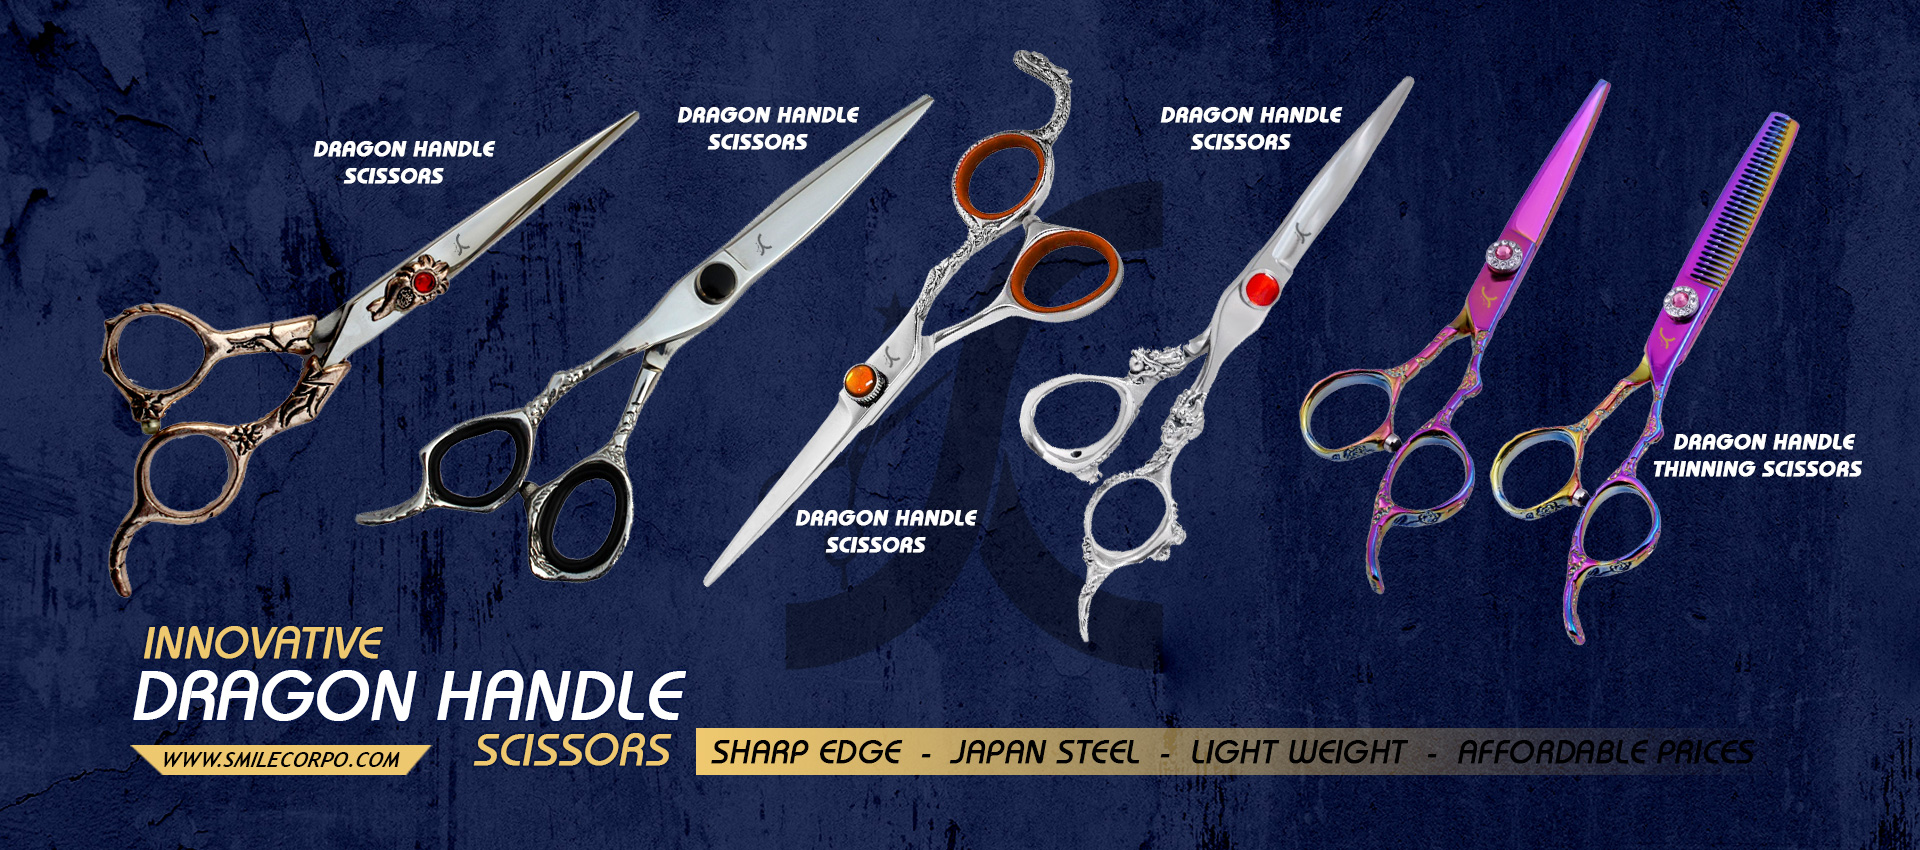 Dragon Handle Scissors